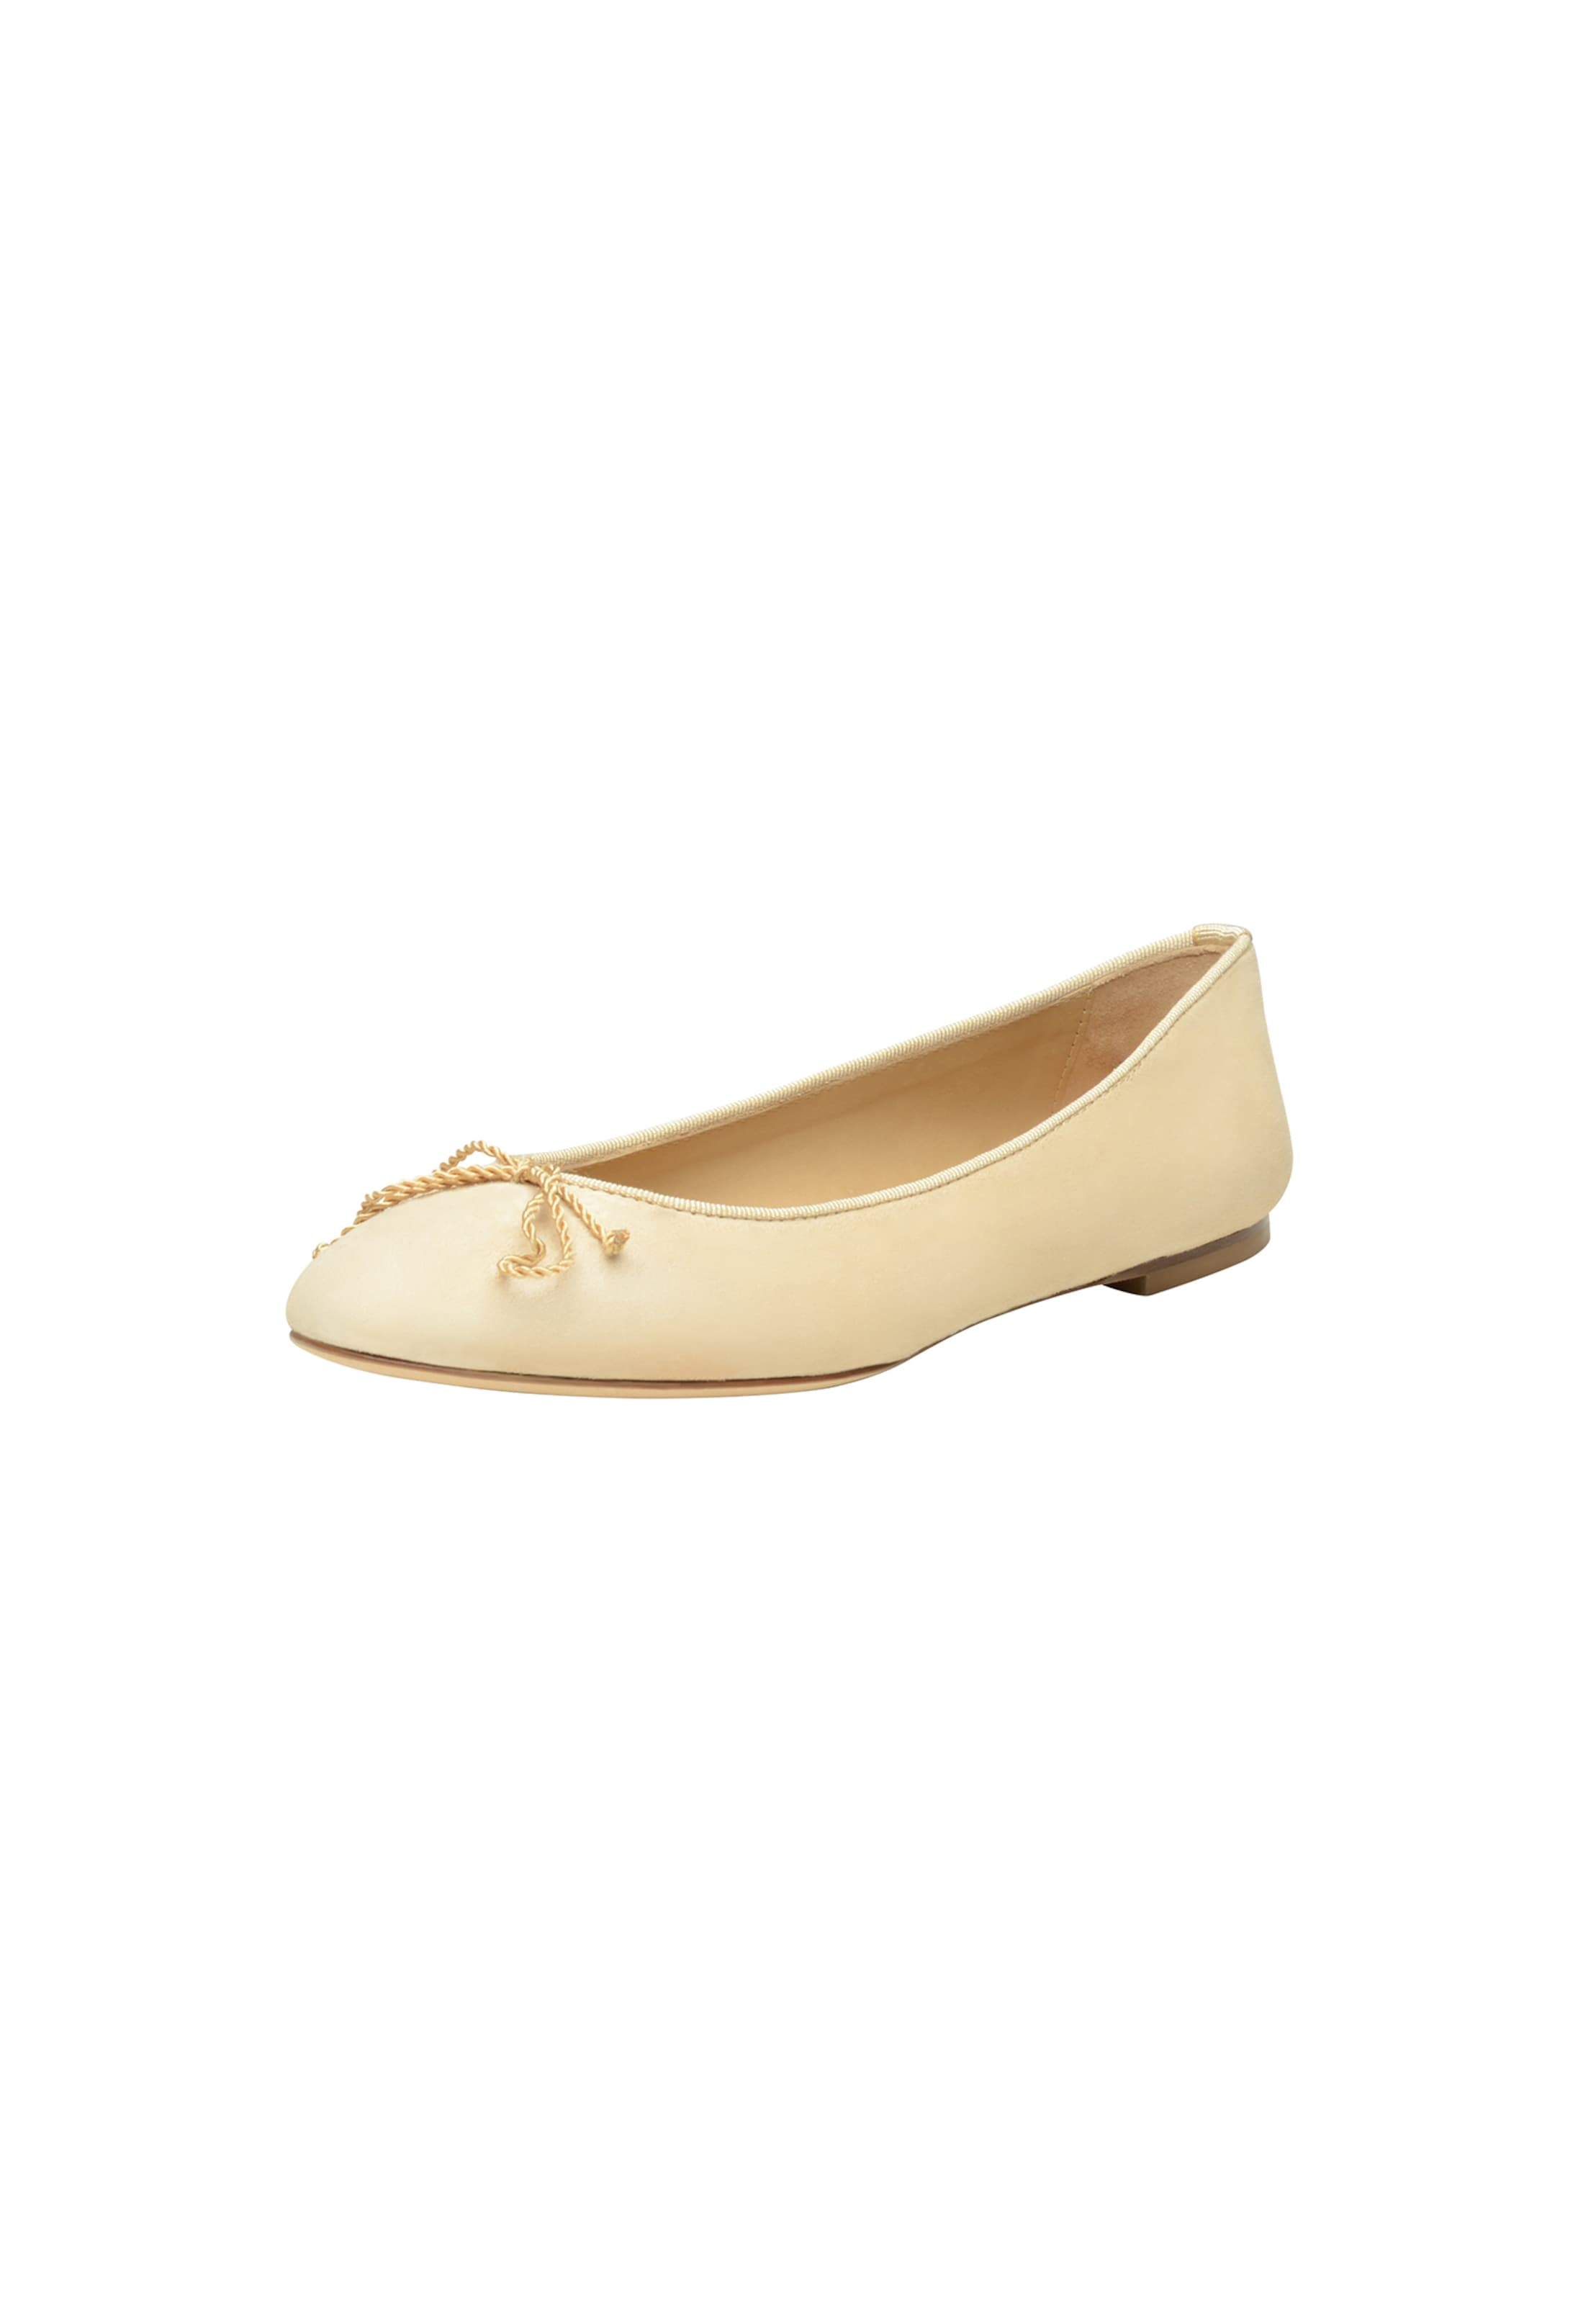 SHOEPASSION Ballerinas  No. 33 WL